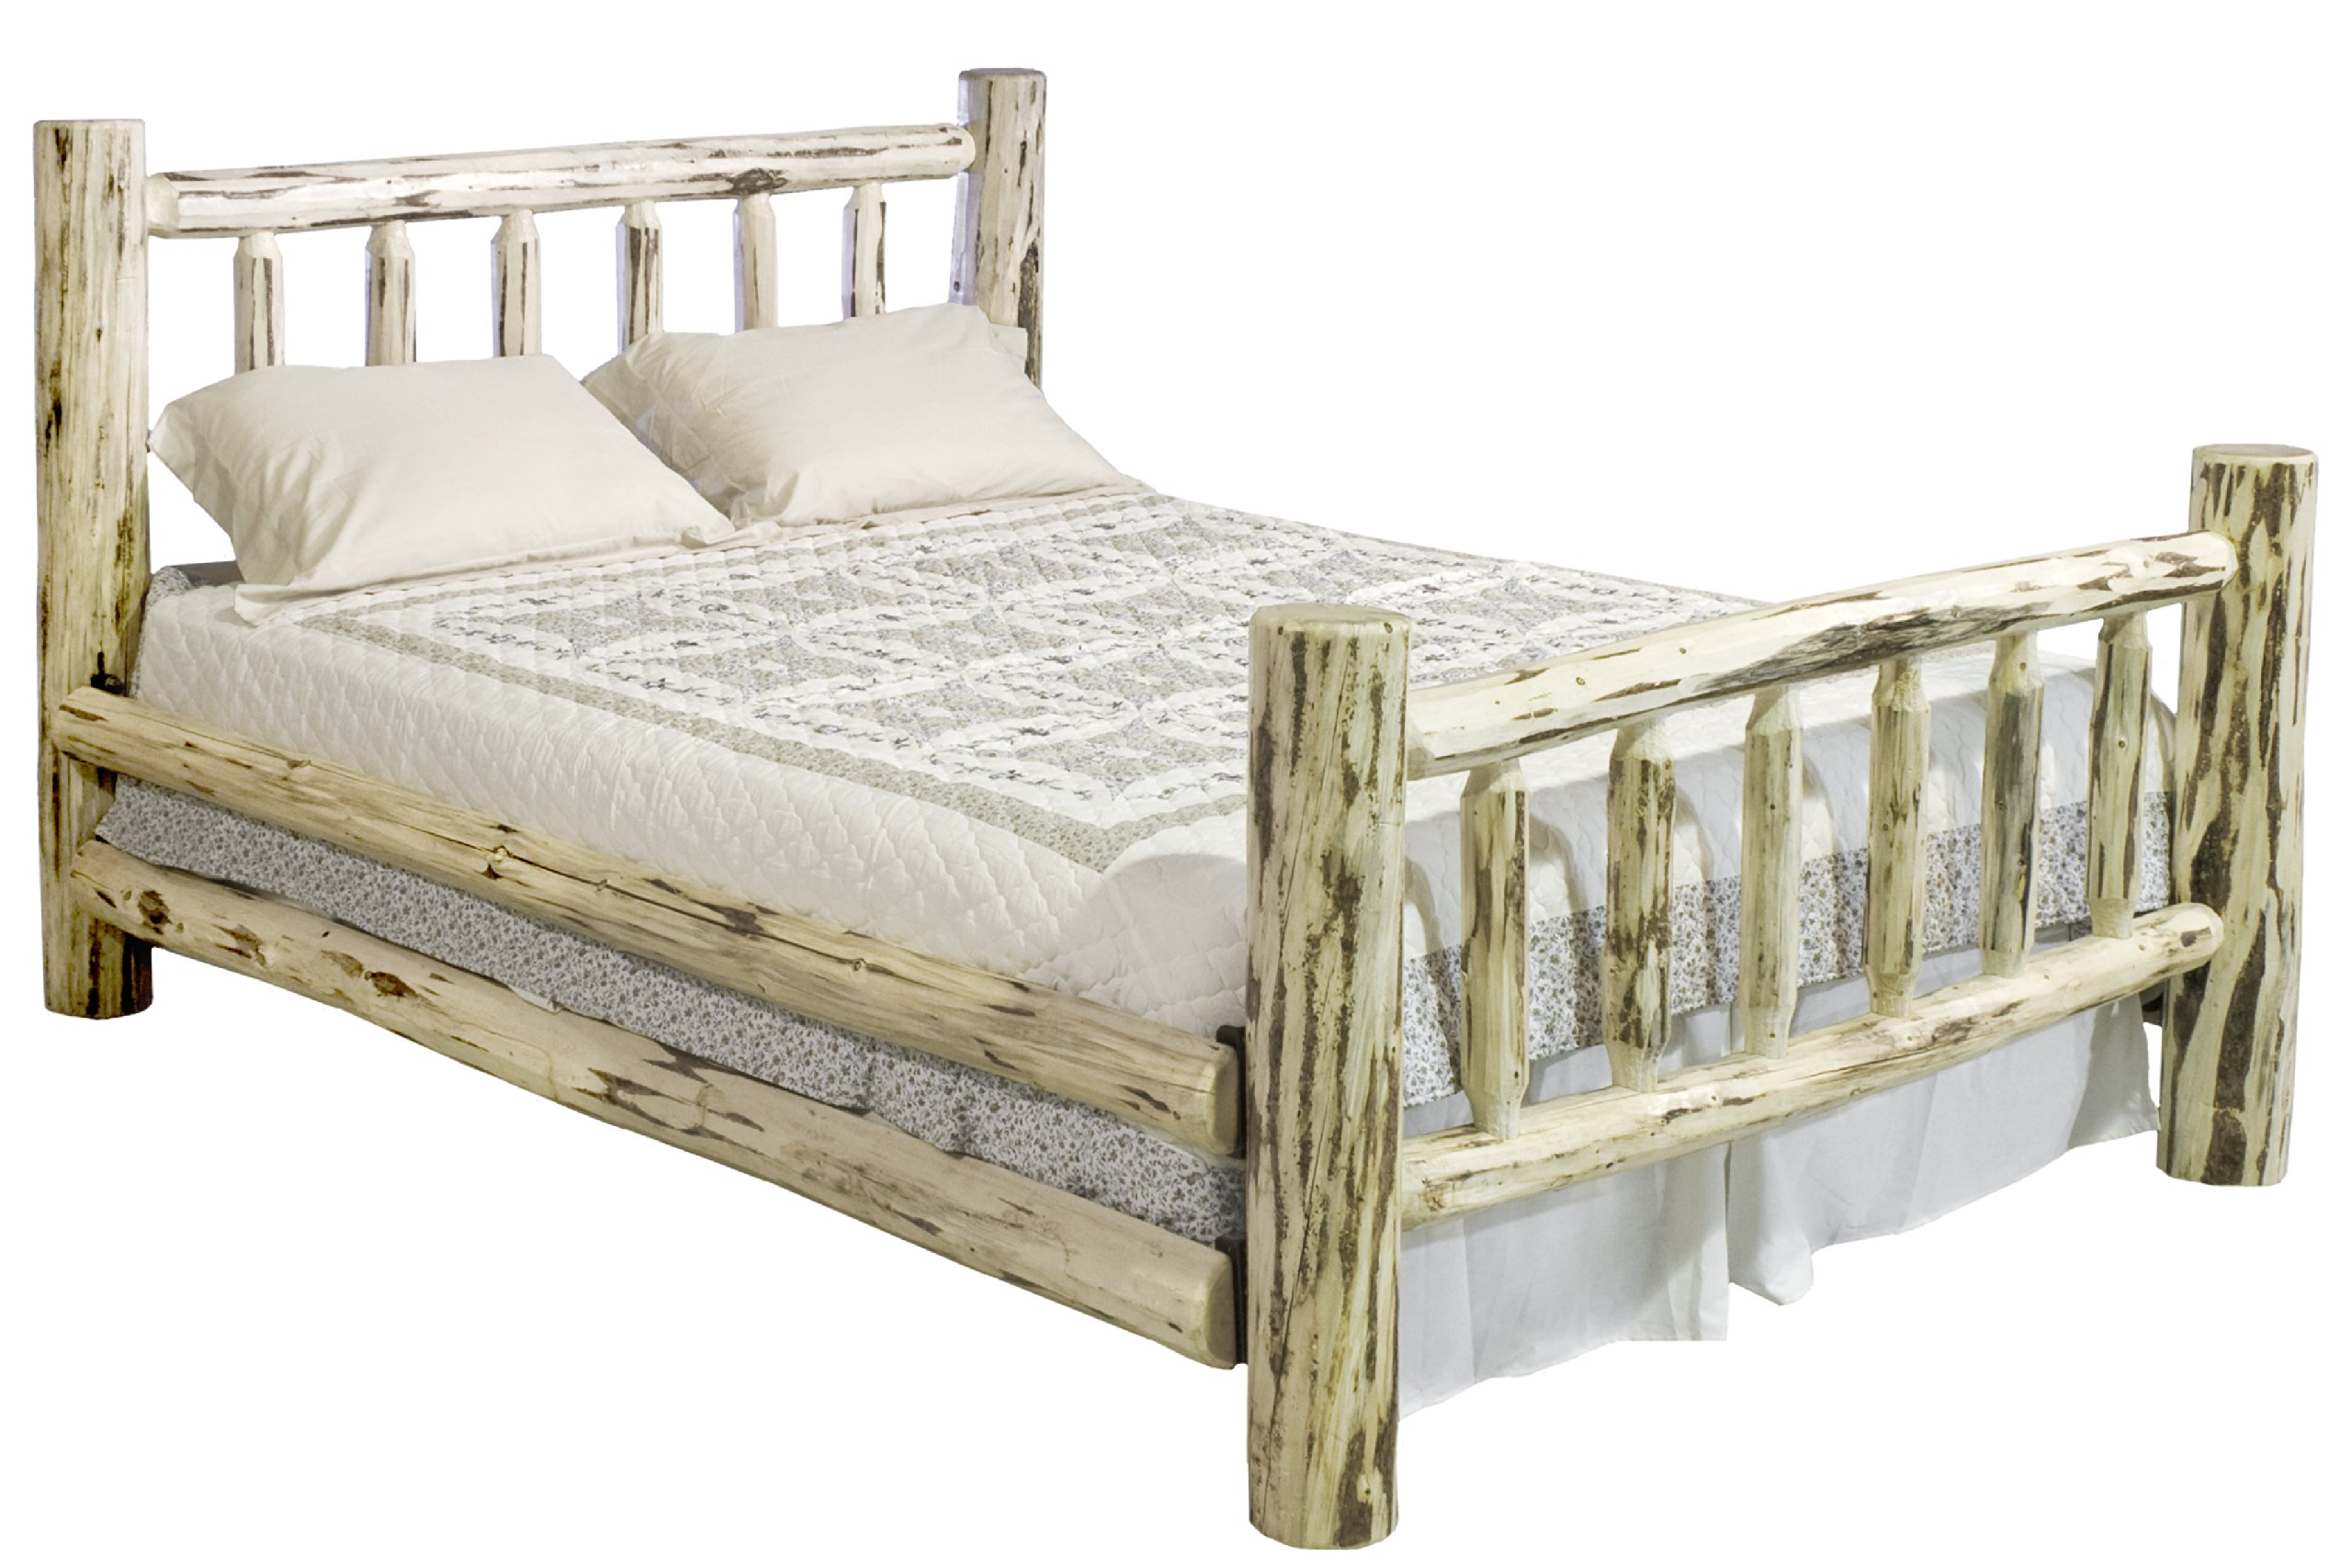 Montana Woodworks Montana Collection Bed, King, Clear Lacquer Finish by Montana Woodworks